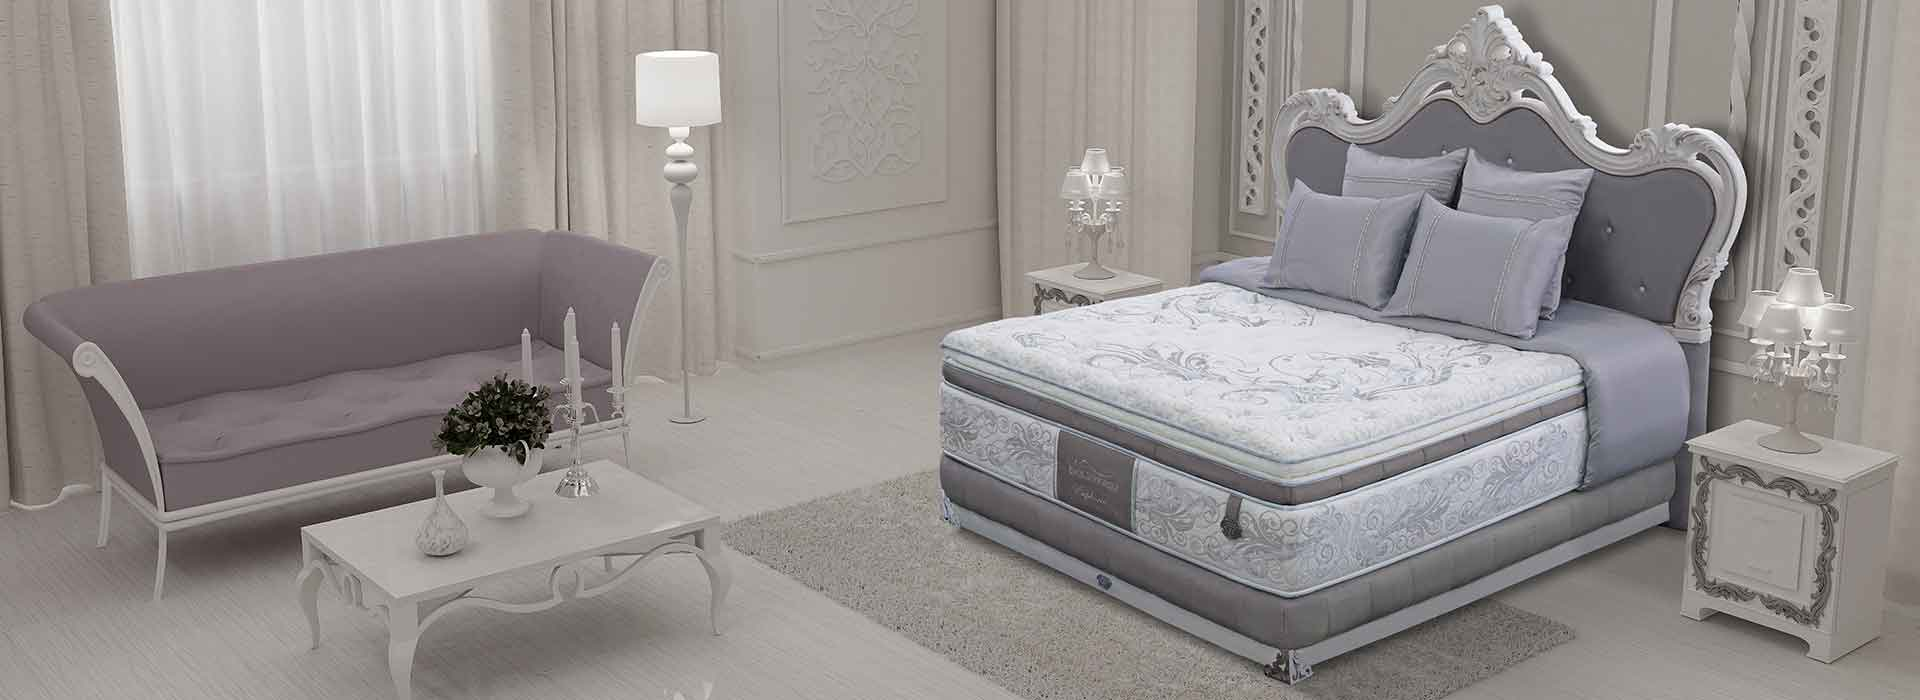 Sleep Sense Spring Air Trusted By Millions Since 1926